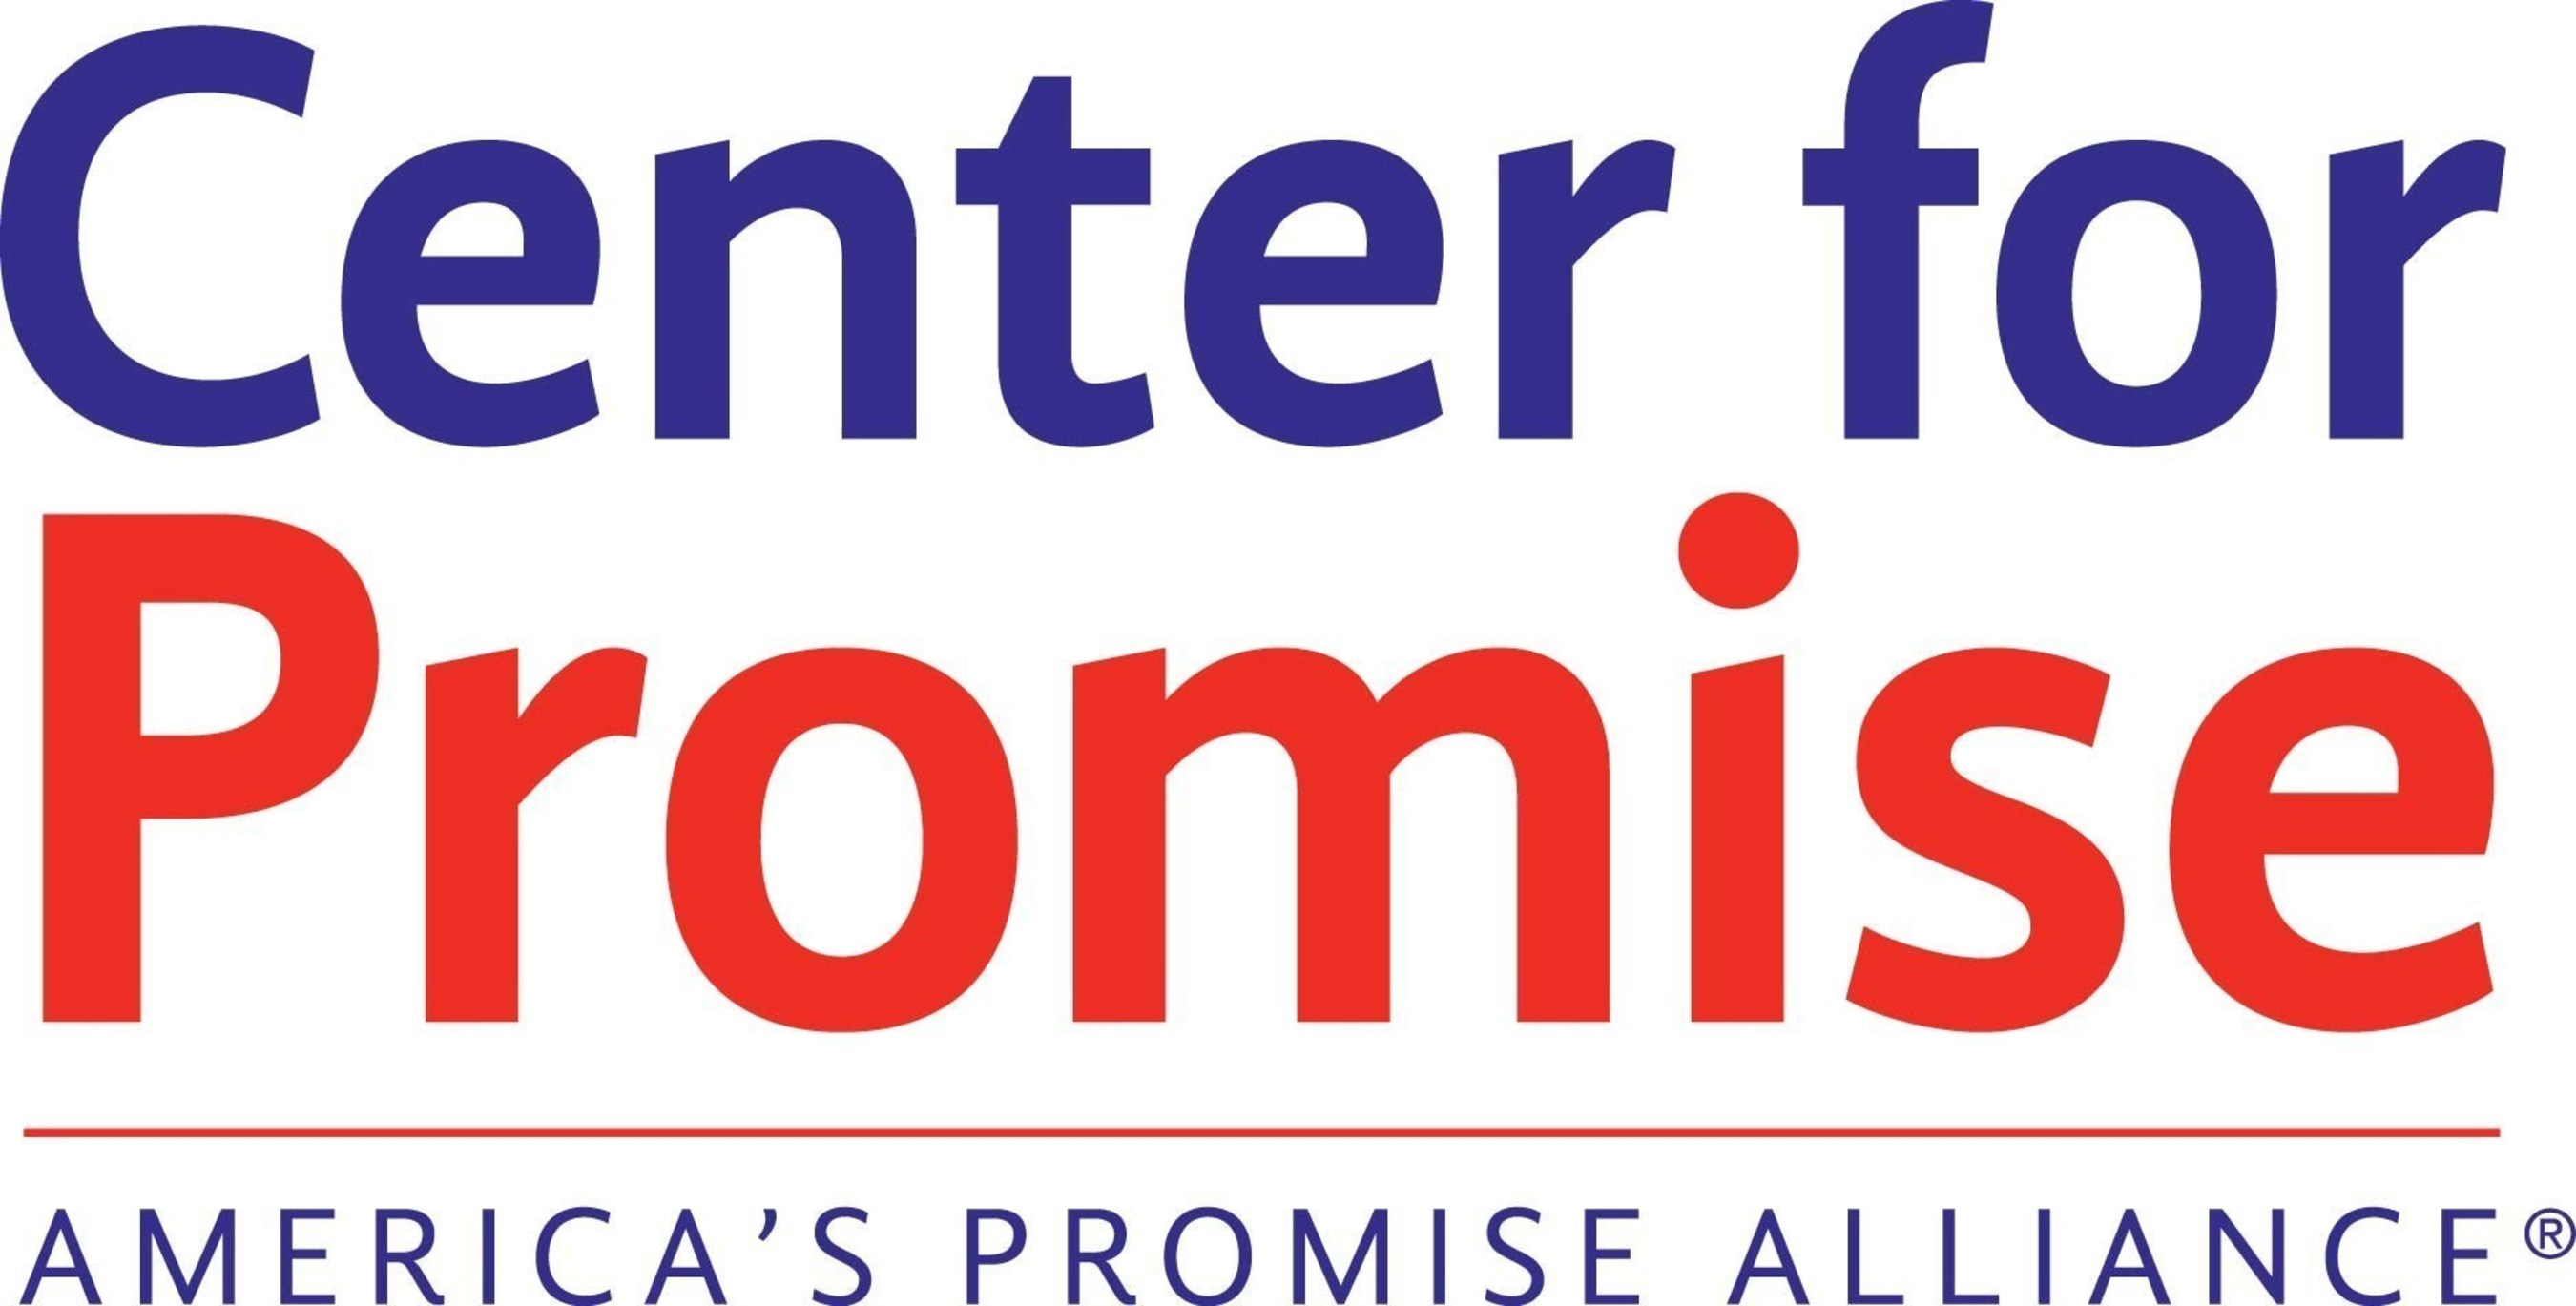 America's Promise Alliance, Boston University School of Education Join Forces to Better Understand